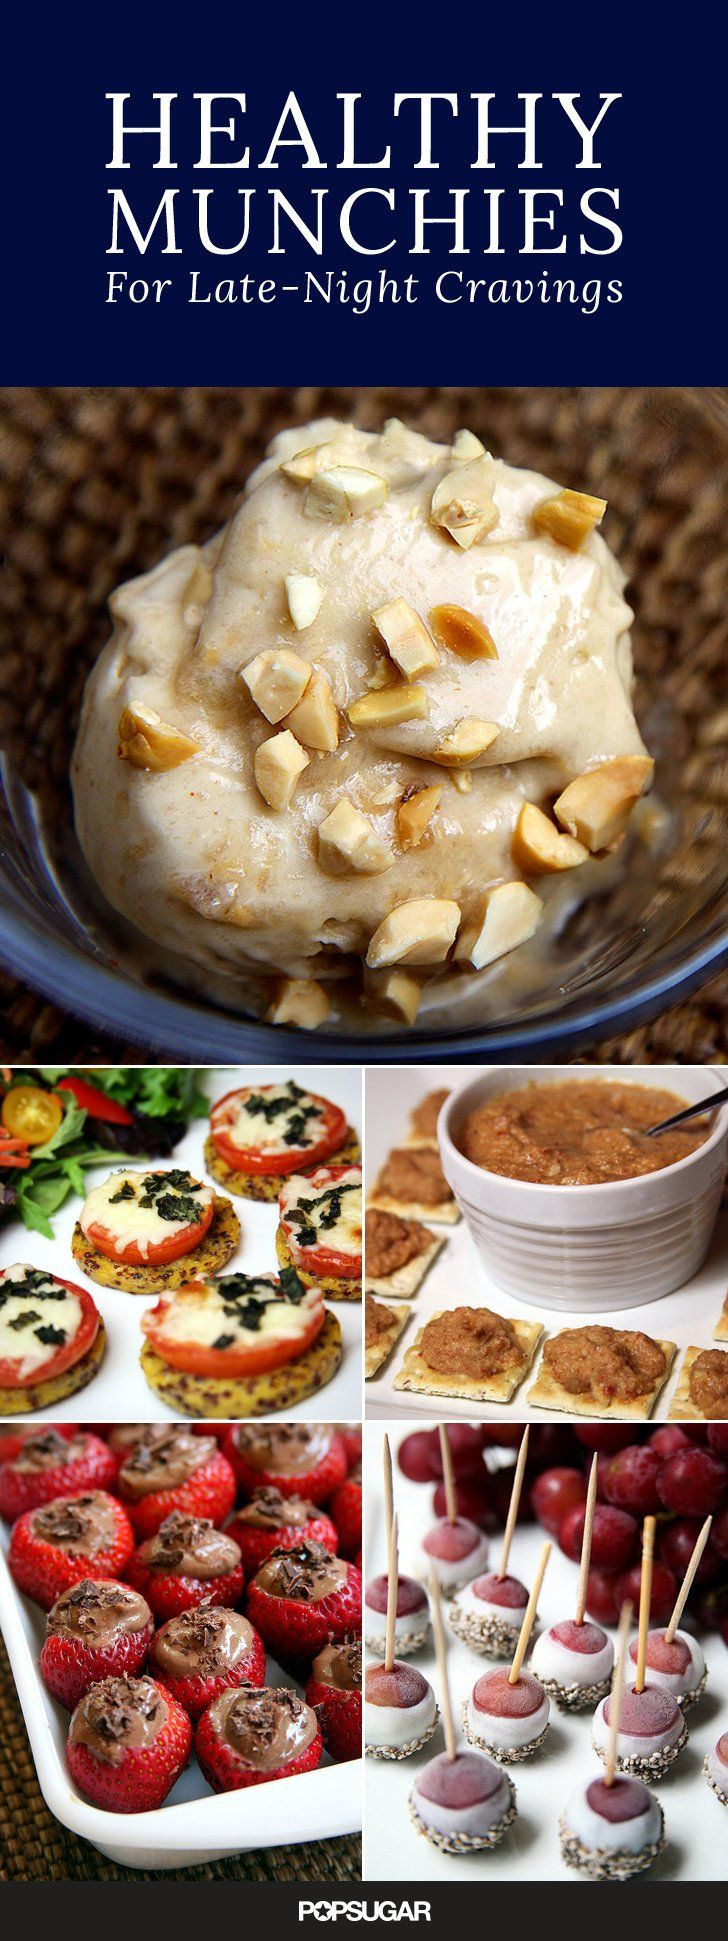 12 Low-Calorie, Late-Night Snacks For Delicious Midnight Dining